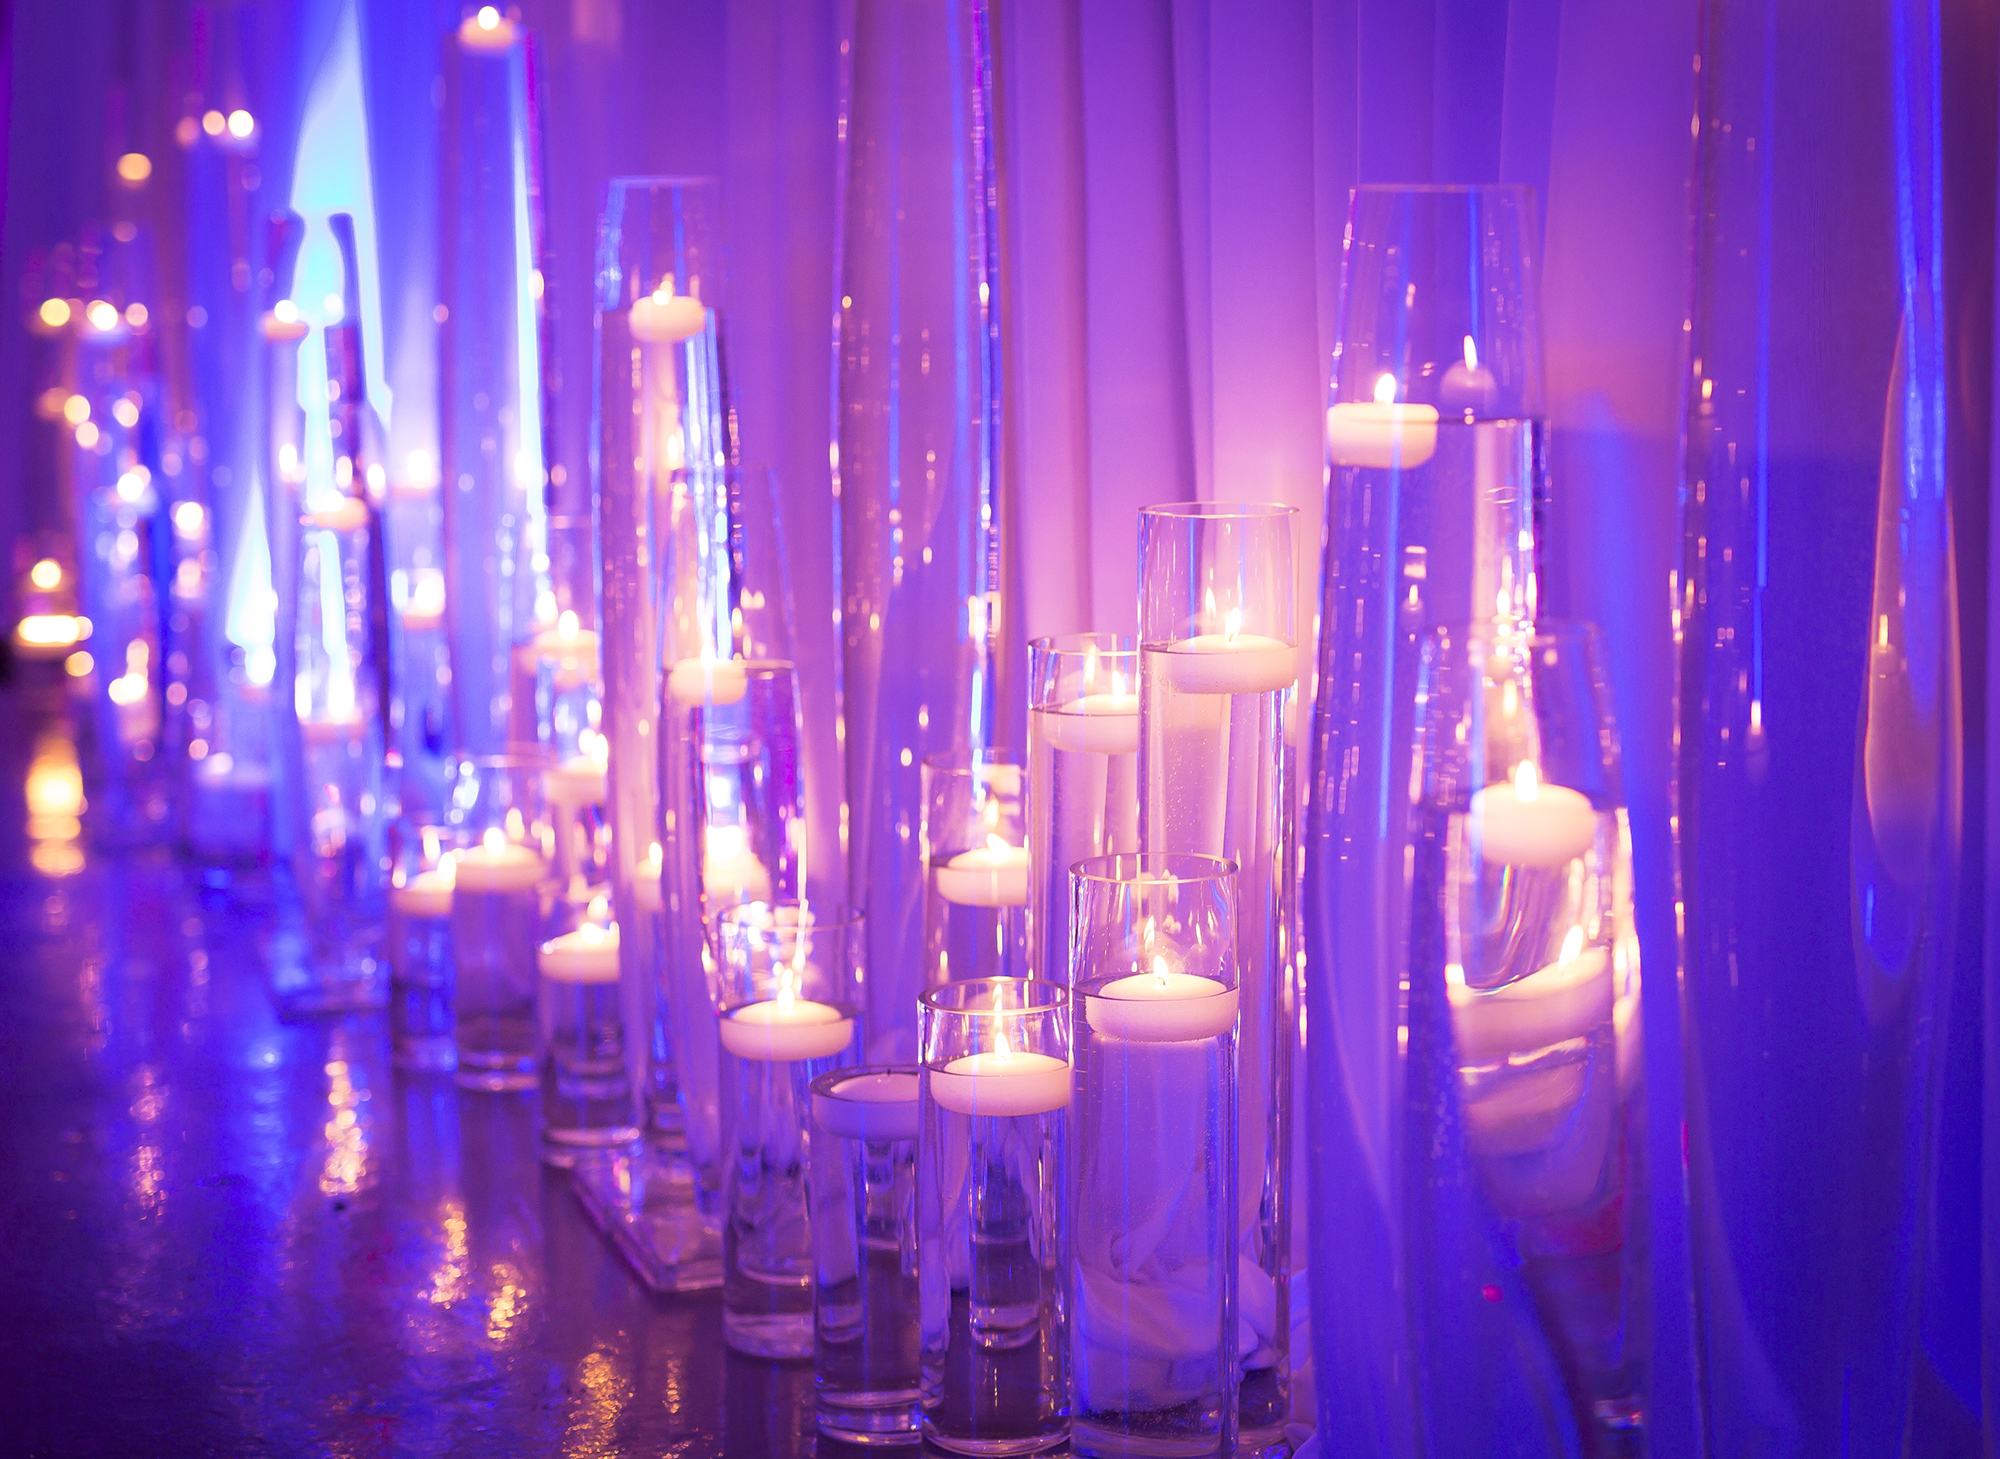 Dream Themed Corporate Holiday Party - Event Creative